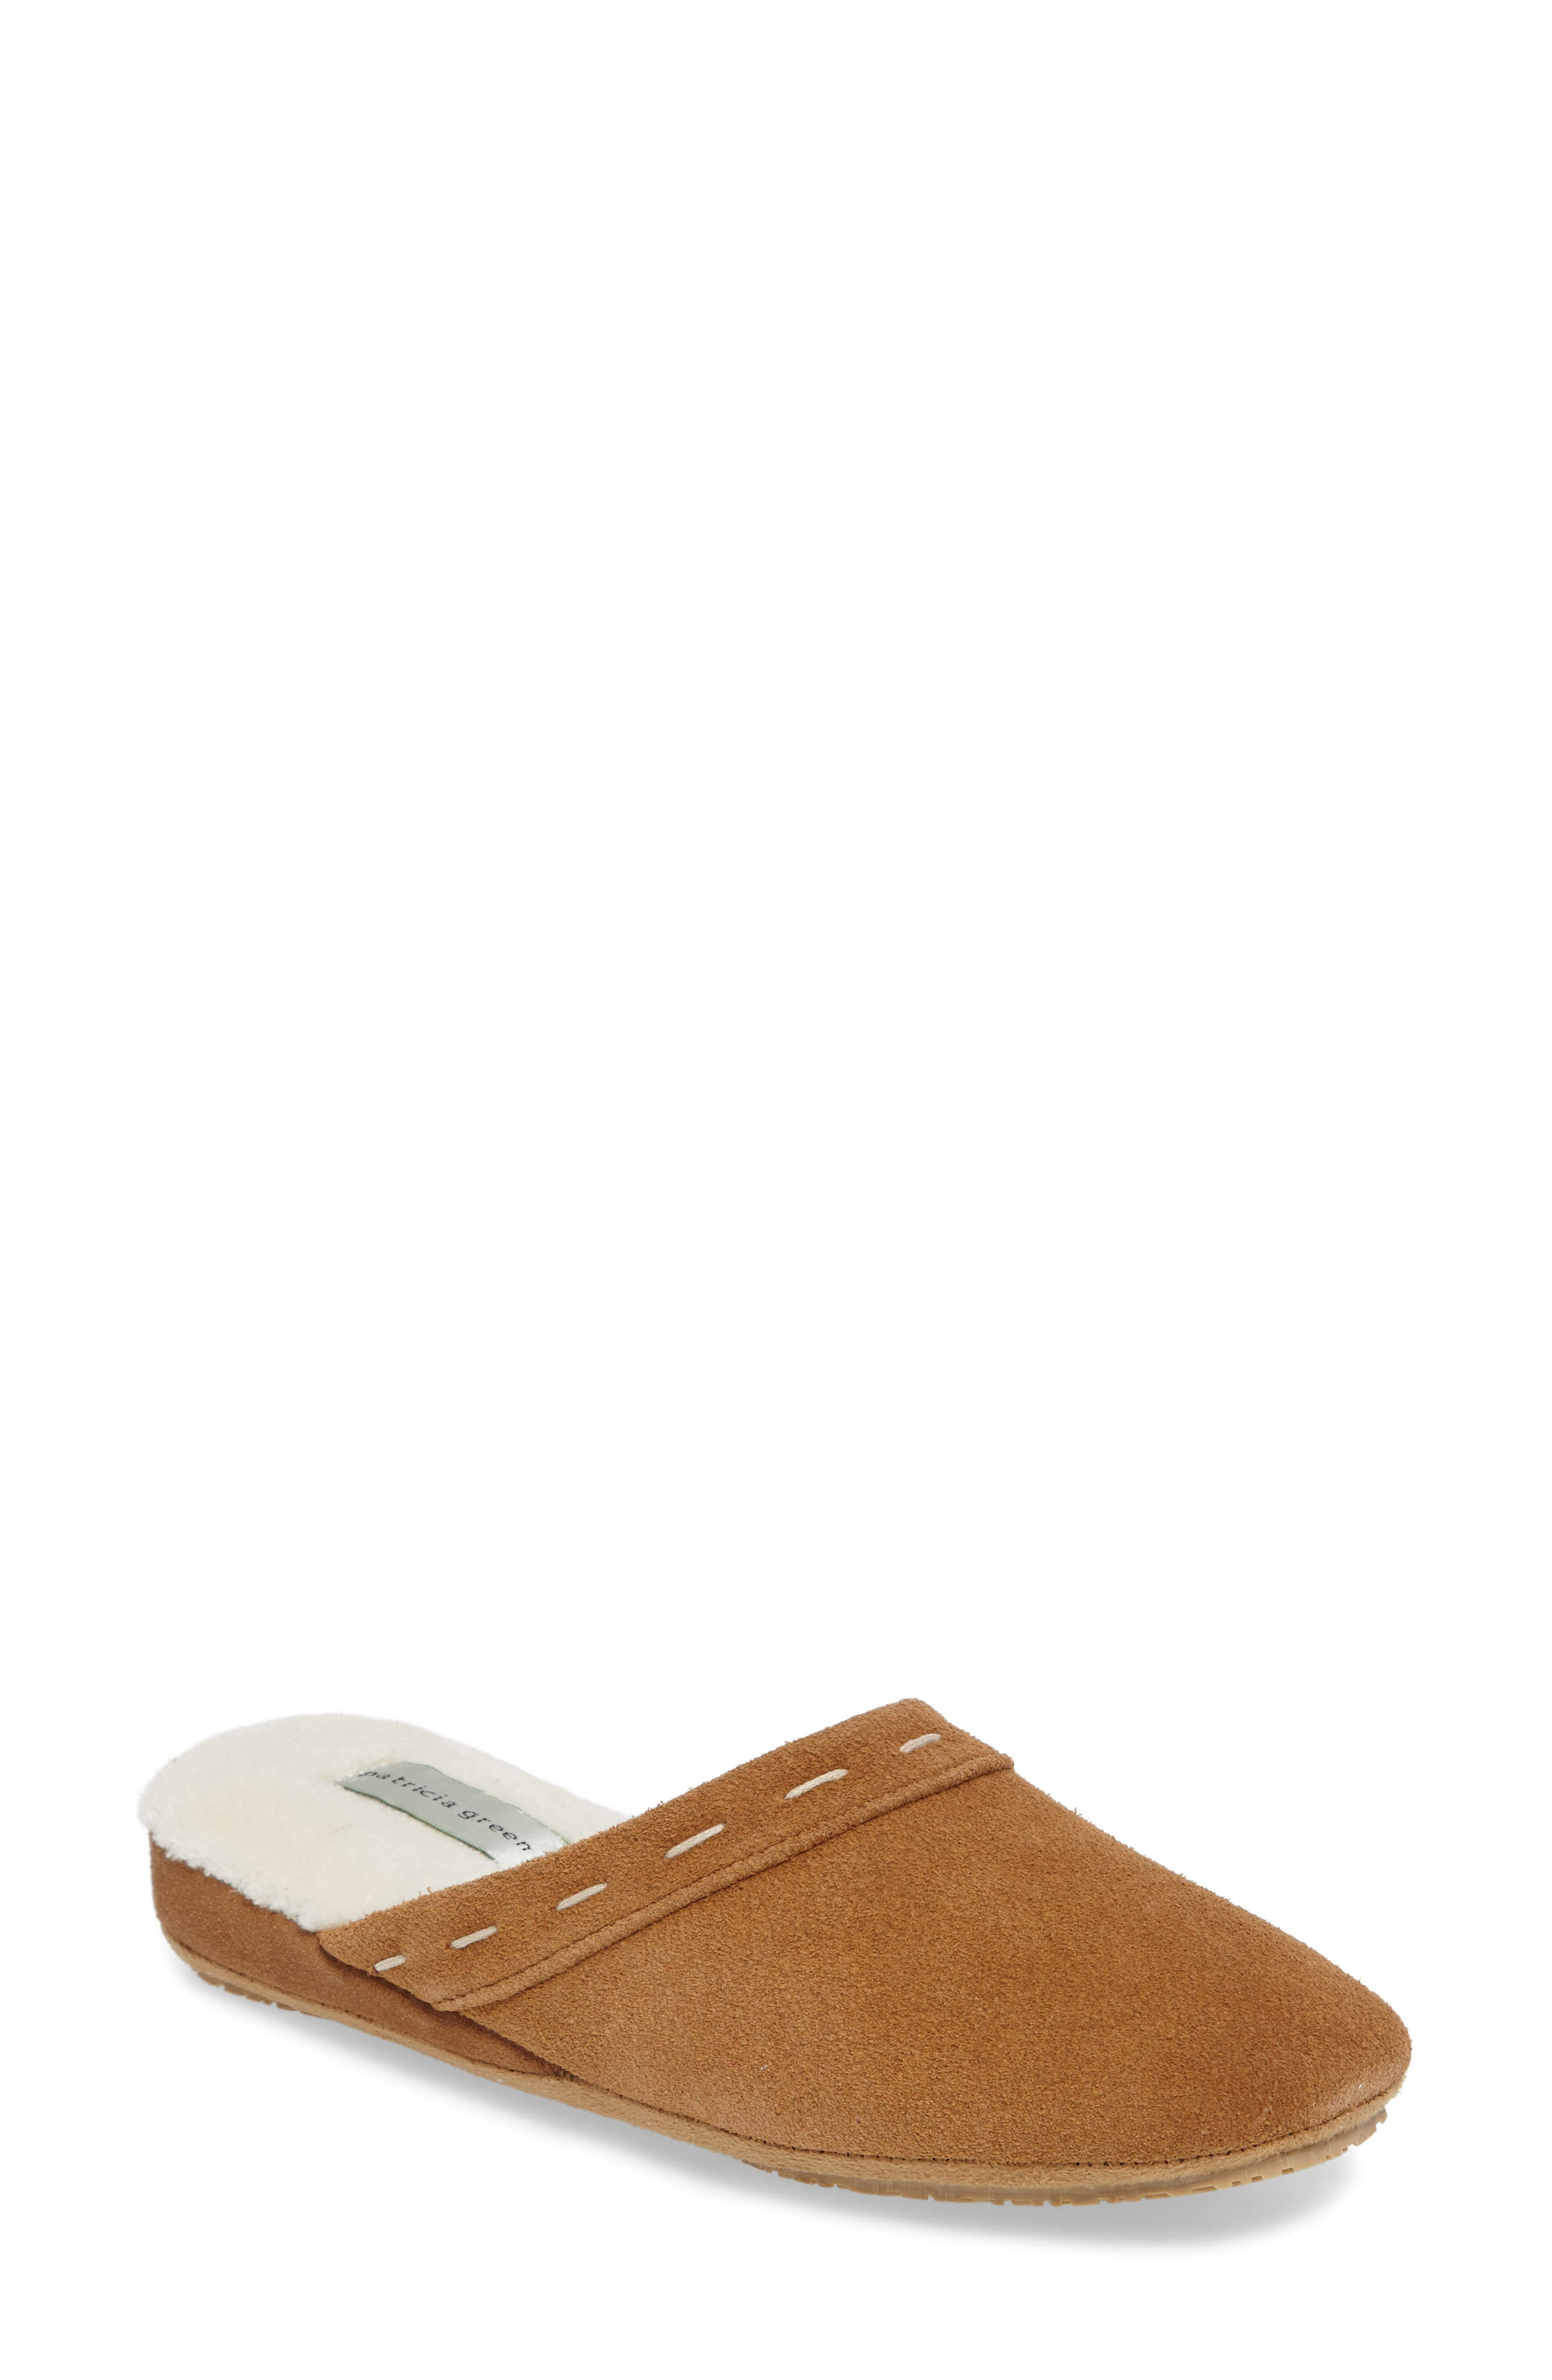 Mayfair Wedge Slipper,                             Main thumbnail 1, color,                             CAMEL SUEDE